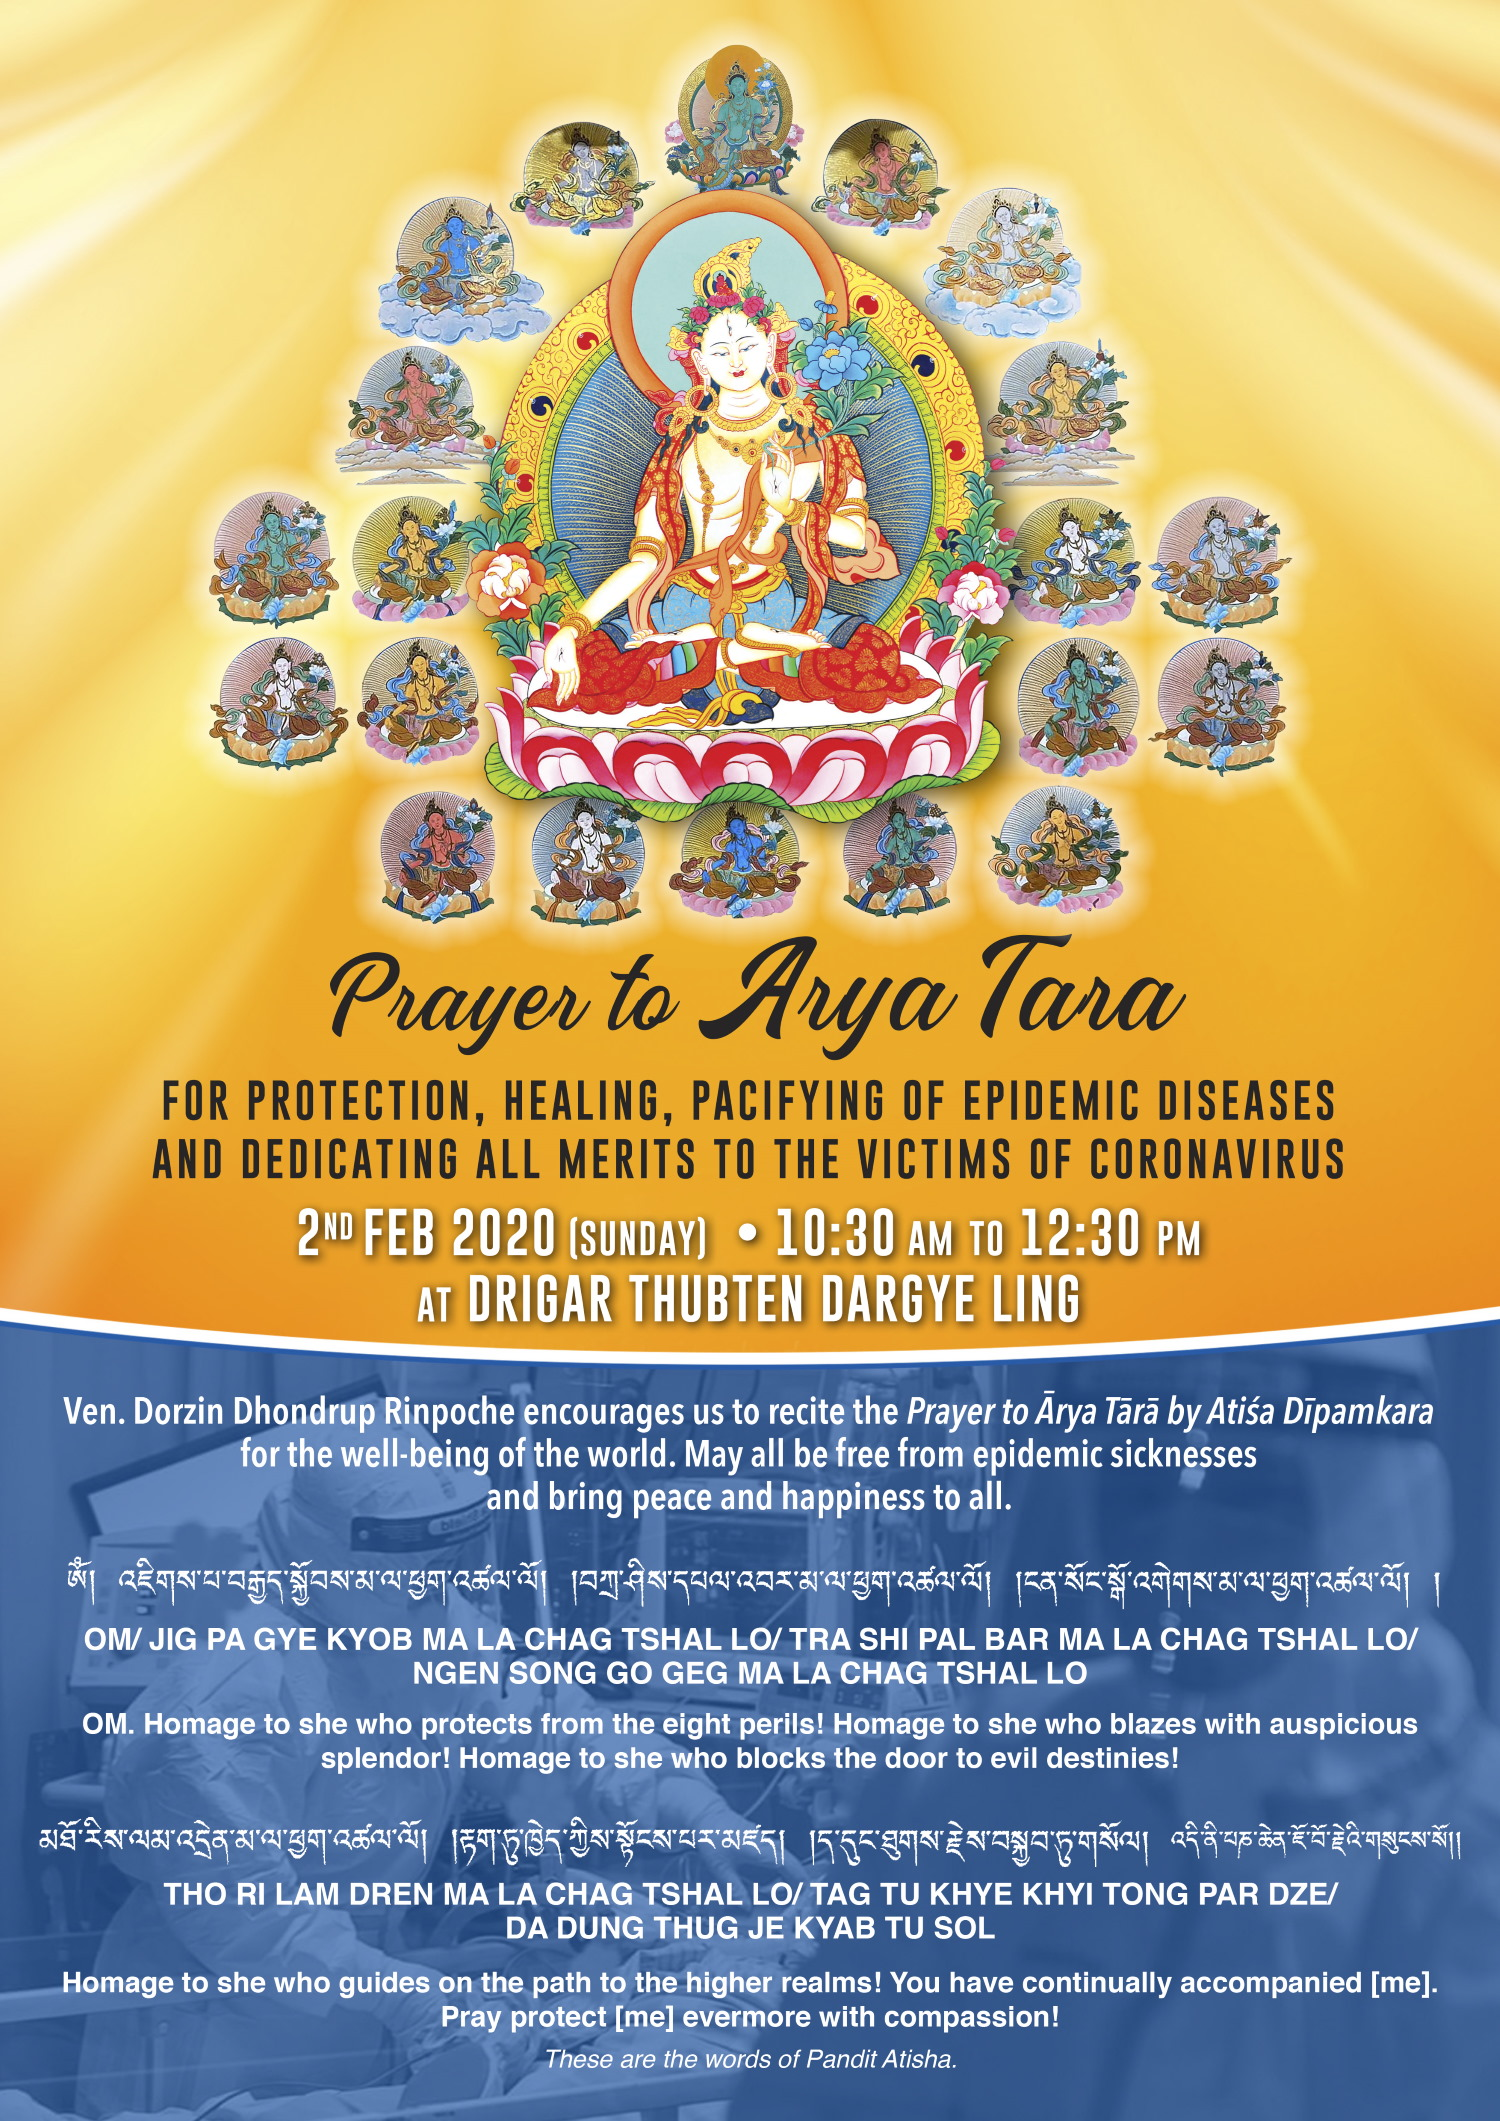 prayer-to-arya-tara-2020